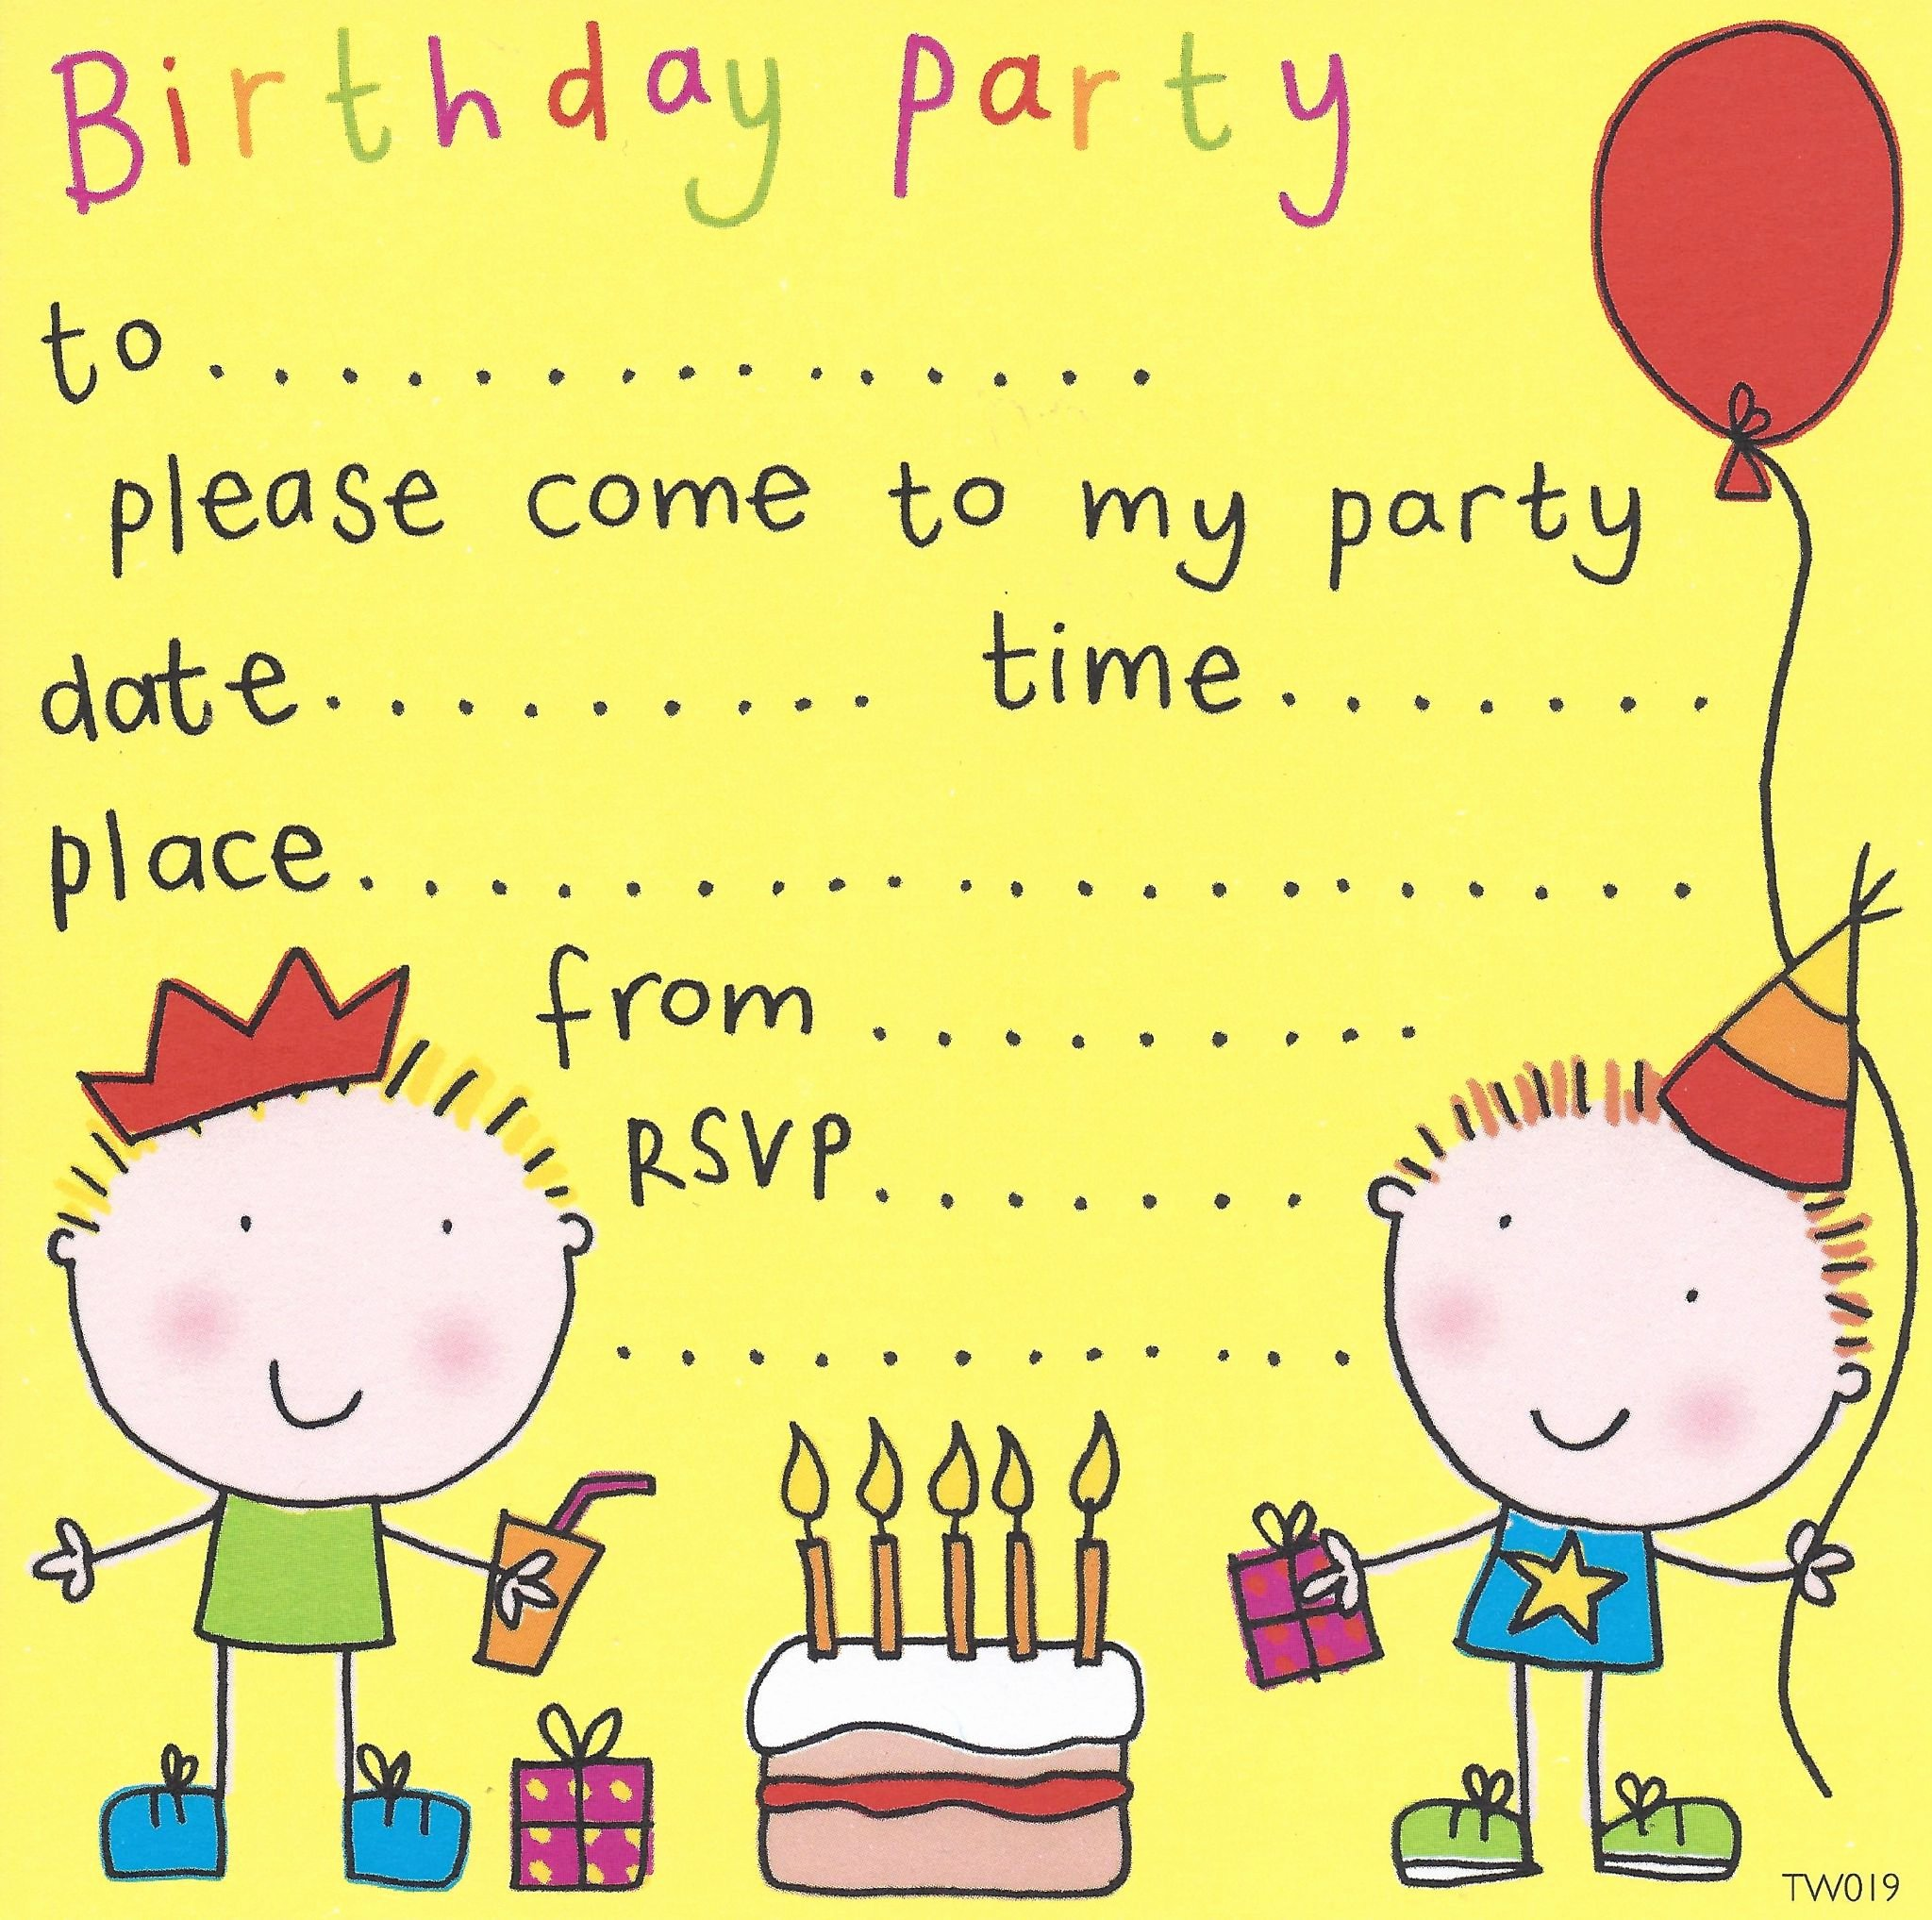 Kids Party Invitation Template New Free Birthday Party Invites for Kids – Free Printable